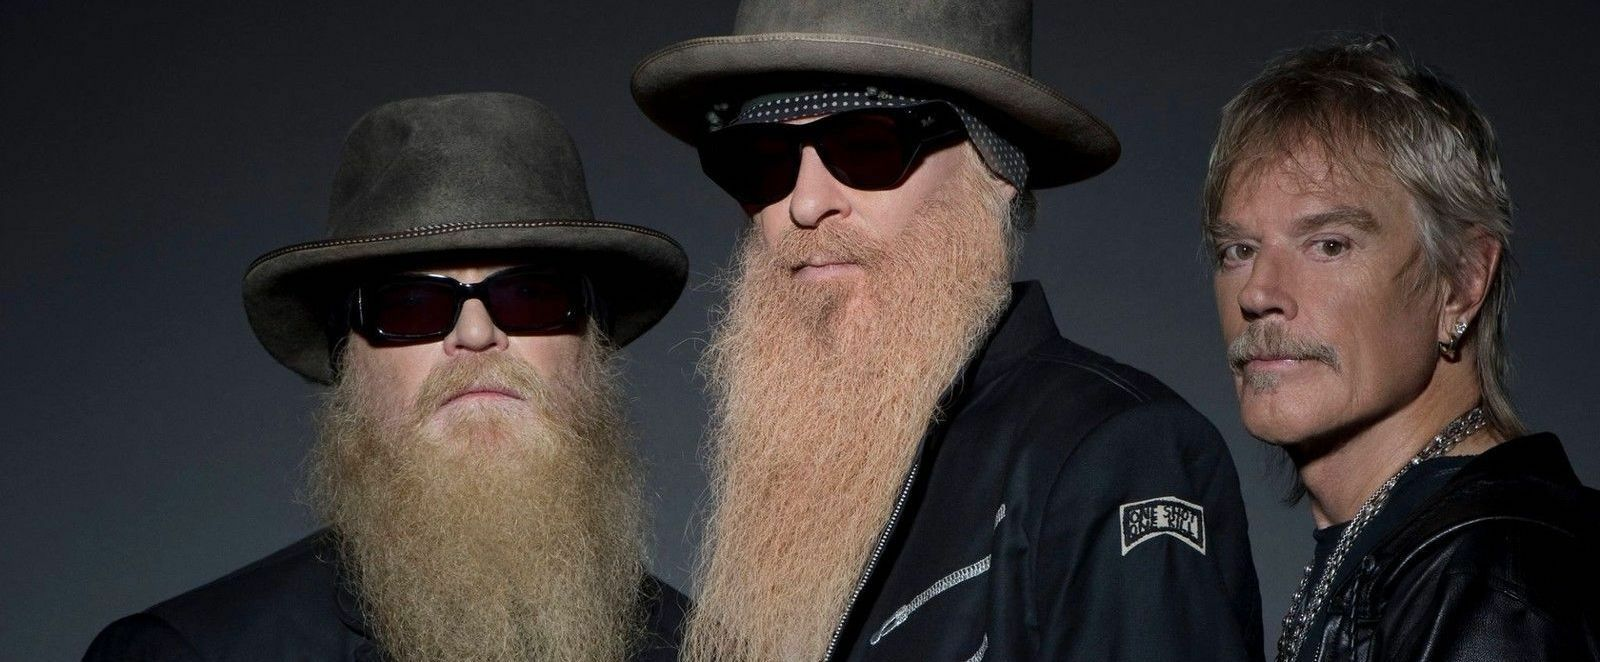 PARKING PASSES ONLY ZZ Top